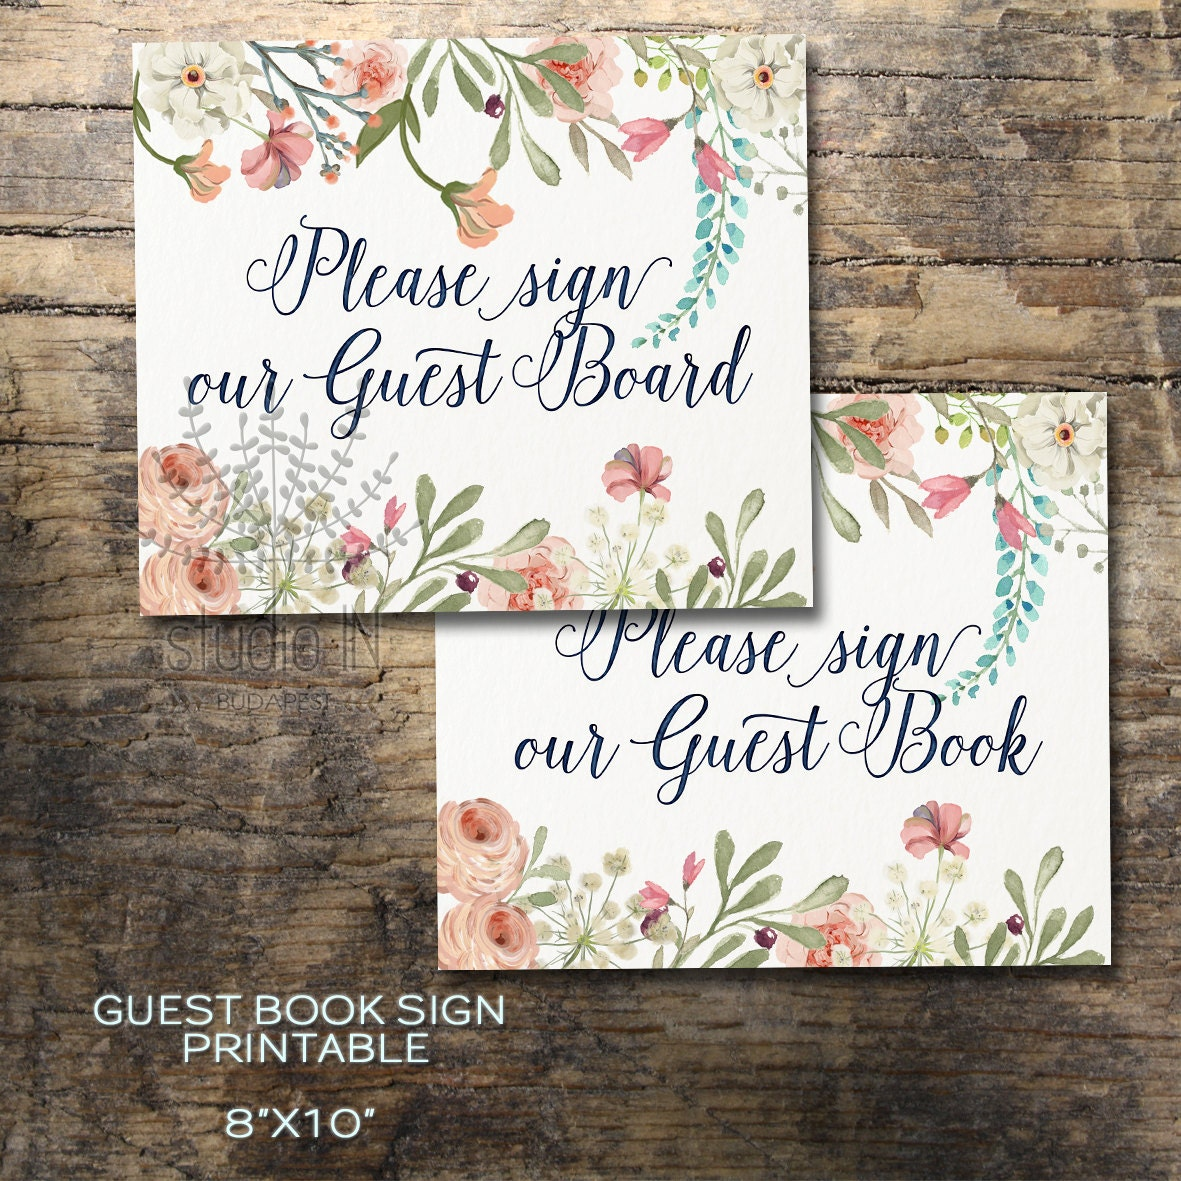 Wedding Guest Book Where It S Your Guests That Sign Their: Printable Wedding Guest Book Sign Floral Guest Book Sign